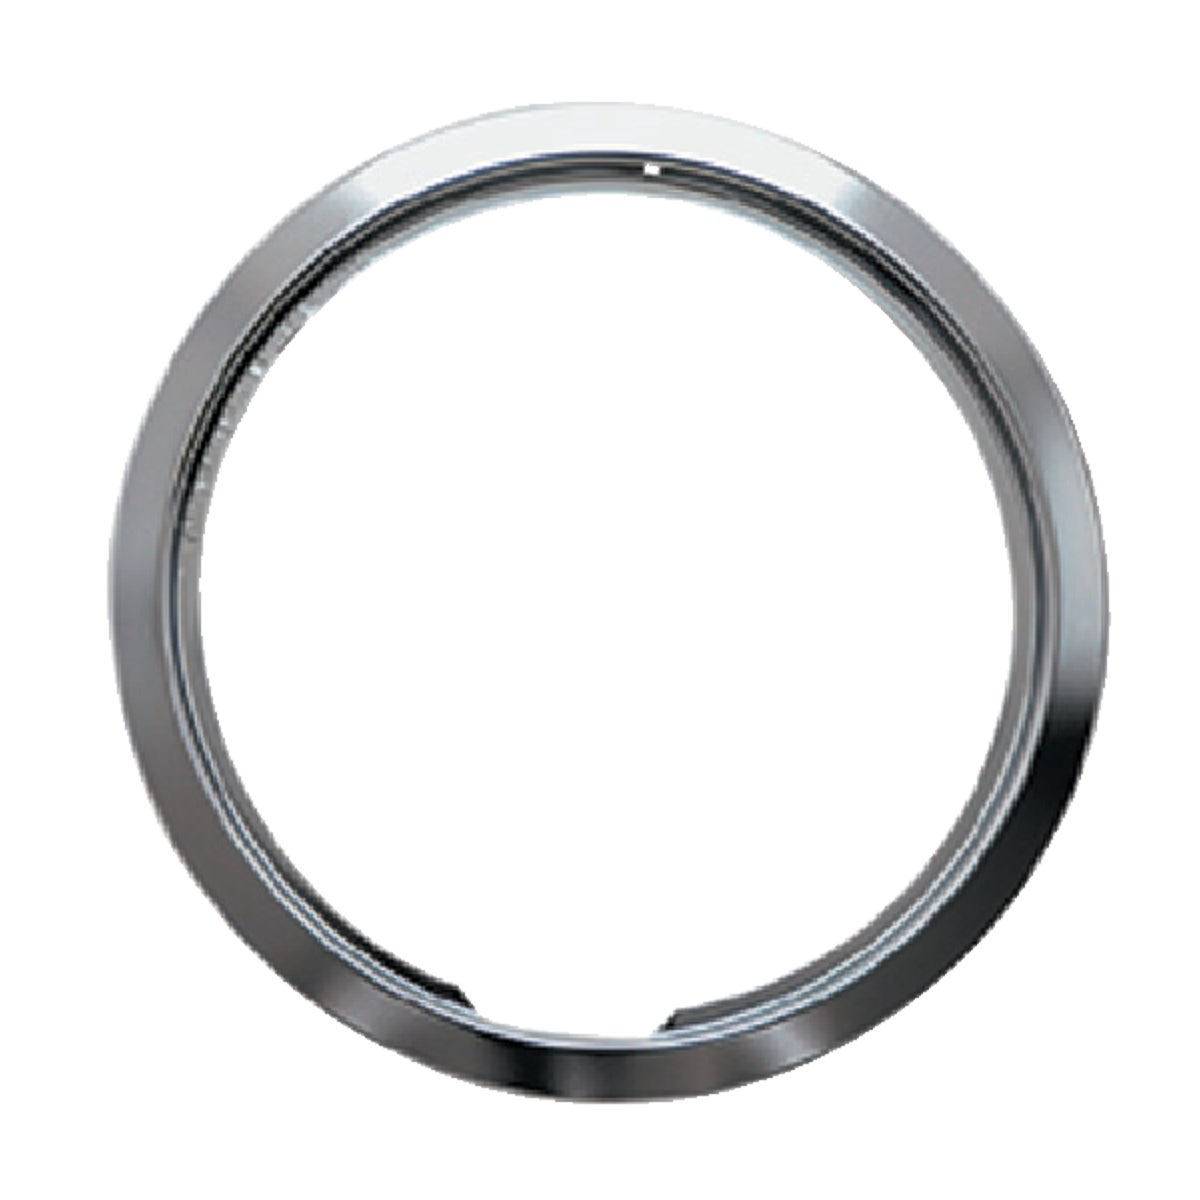 "6"" CHROME TRIM RING"